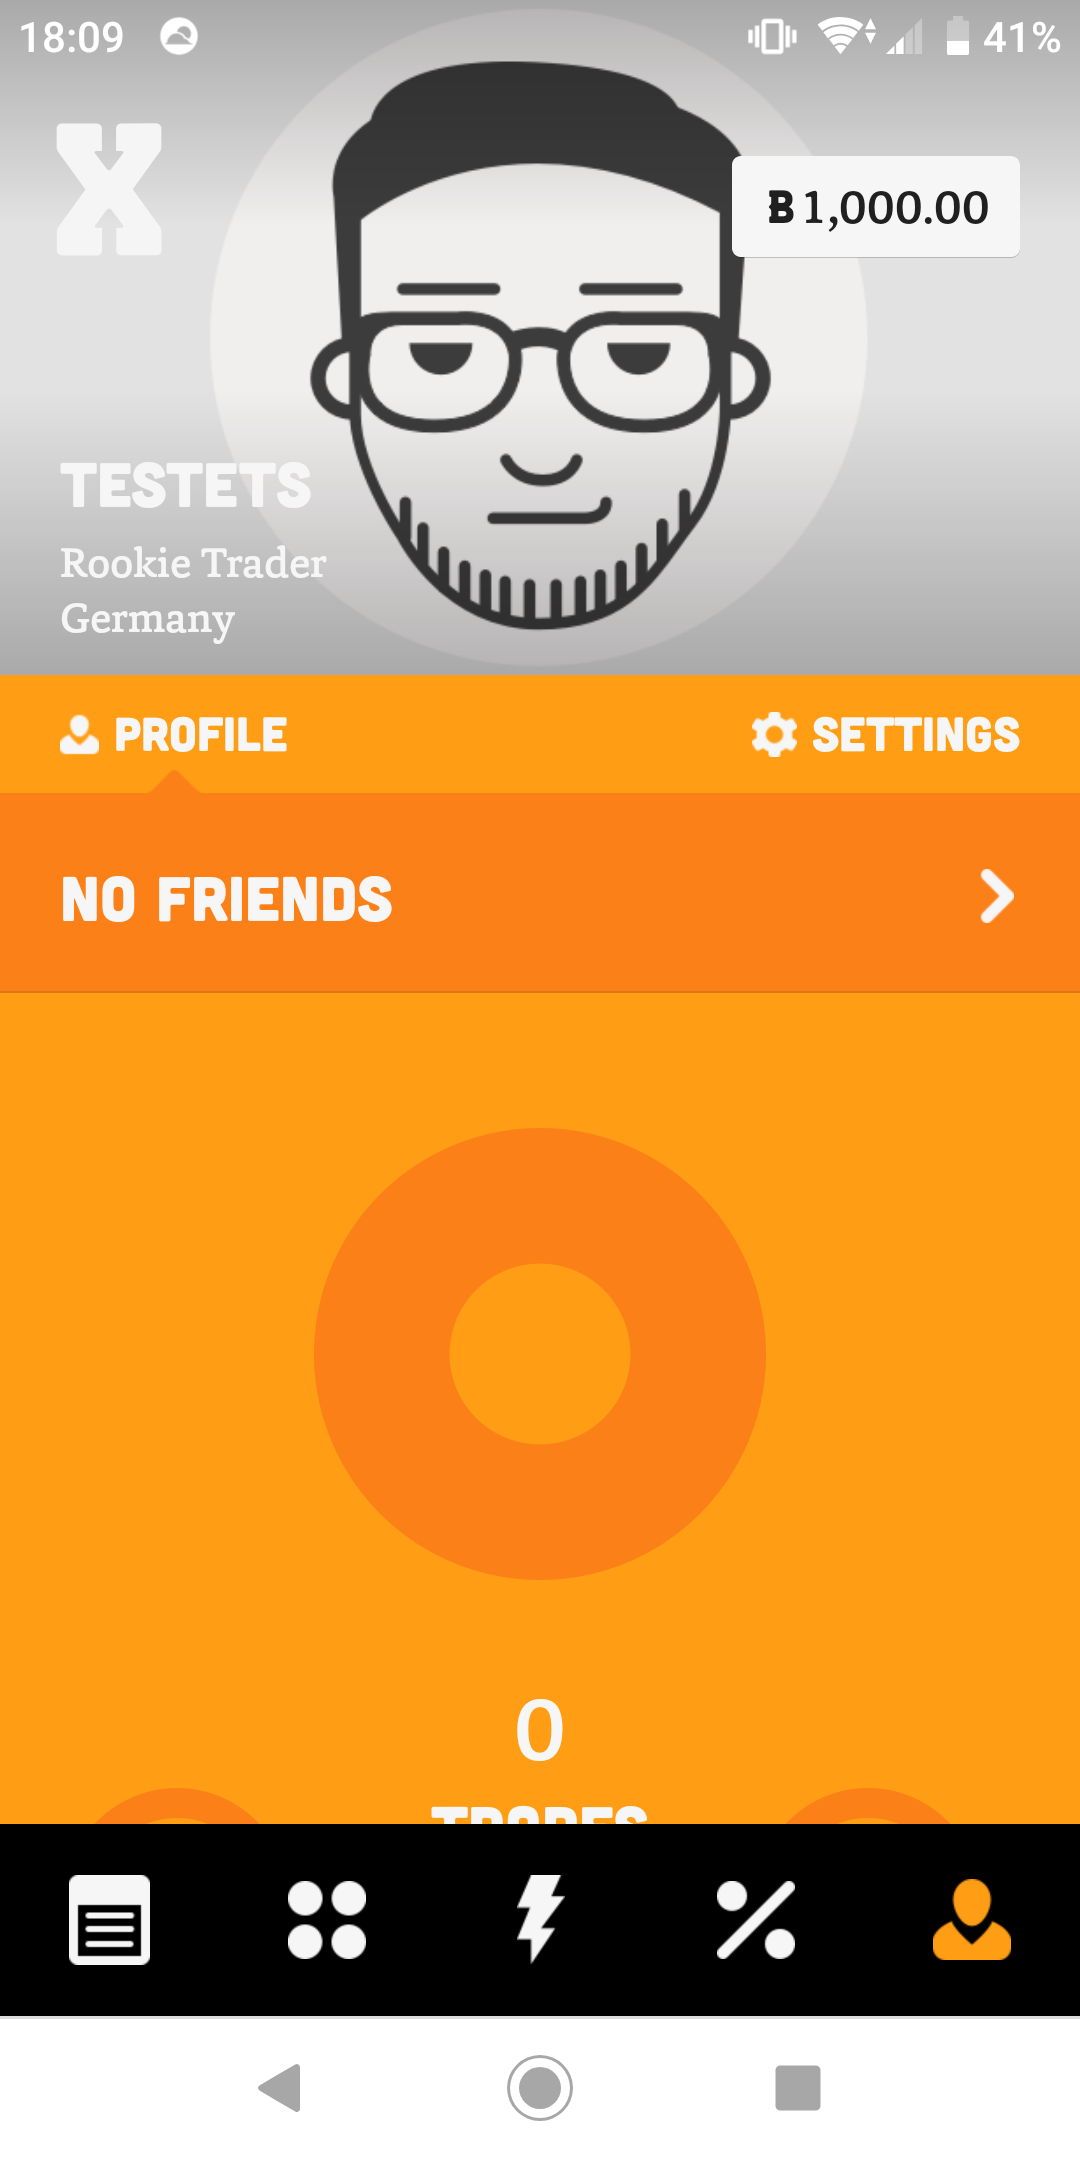 The stock trading app BUX assigns a default profile image to all new users.